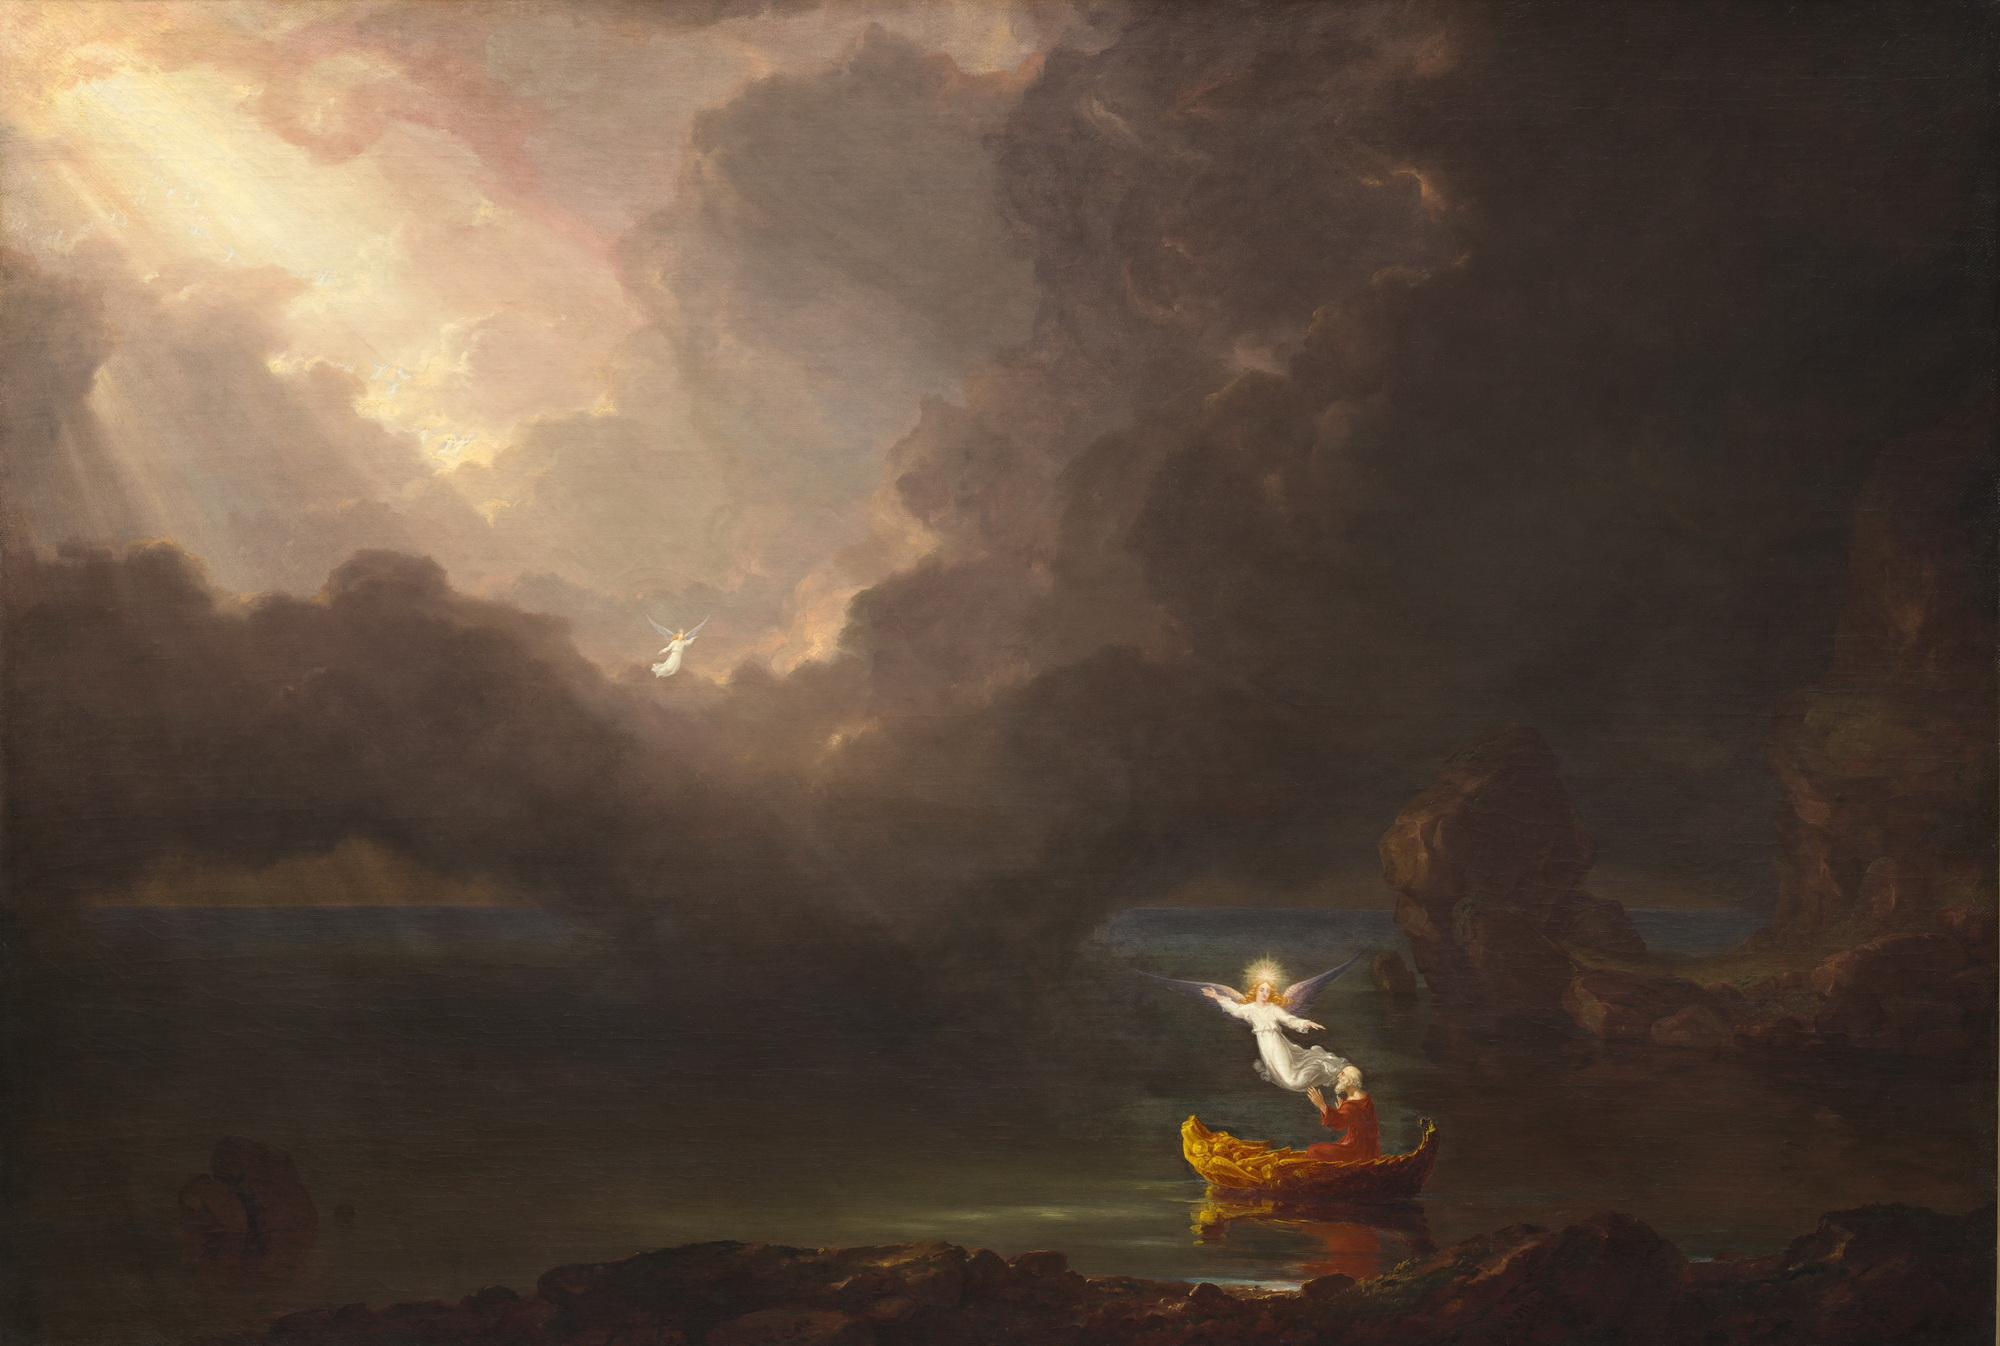 Thomas Cole - The Voyage of Life Old Age 1842-2000